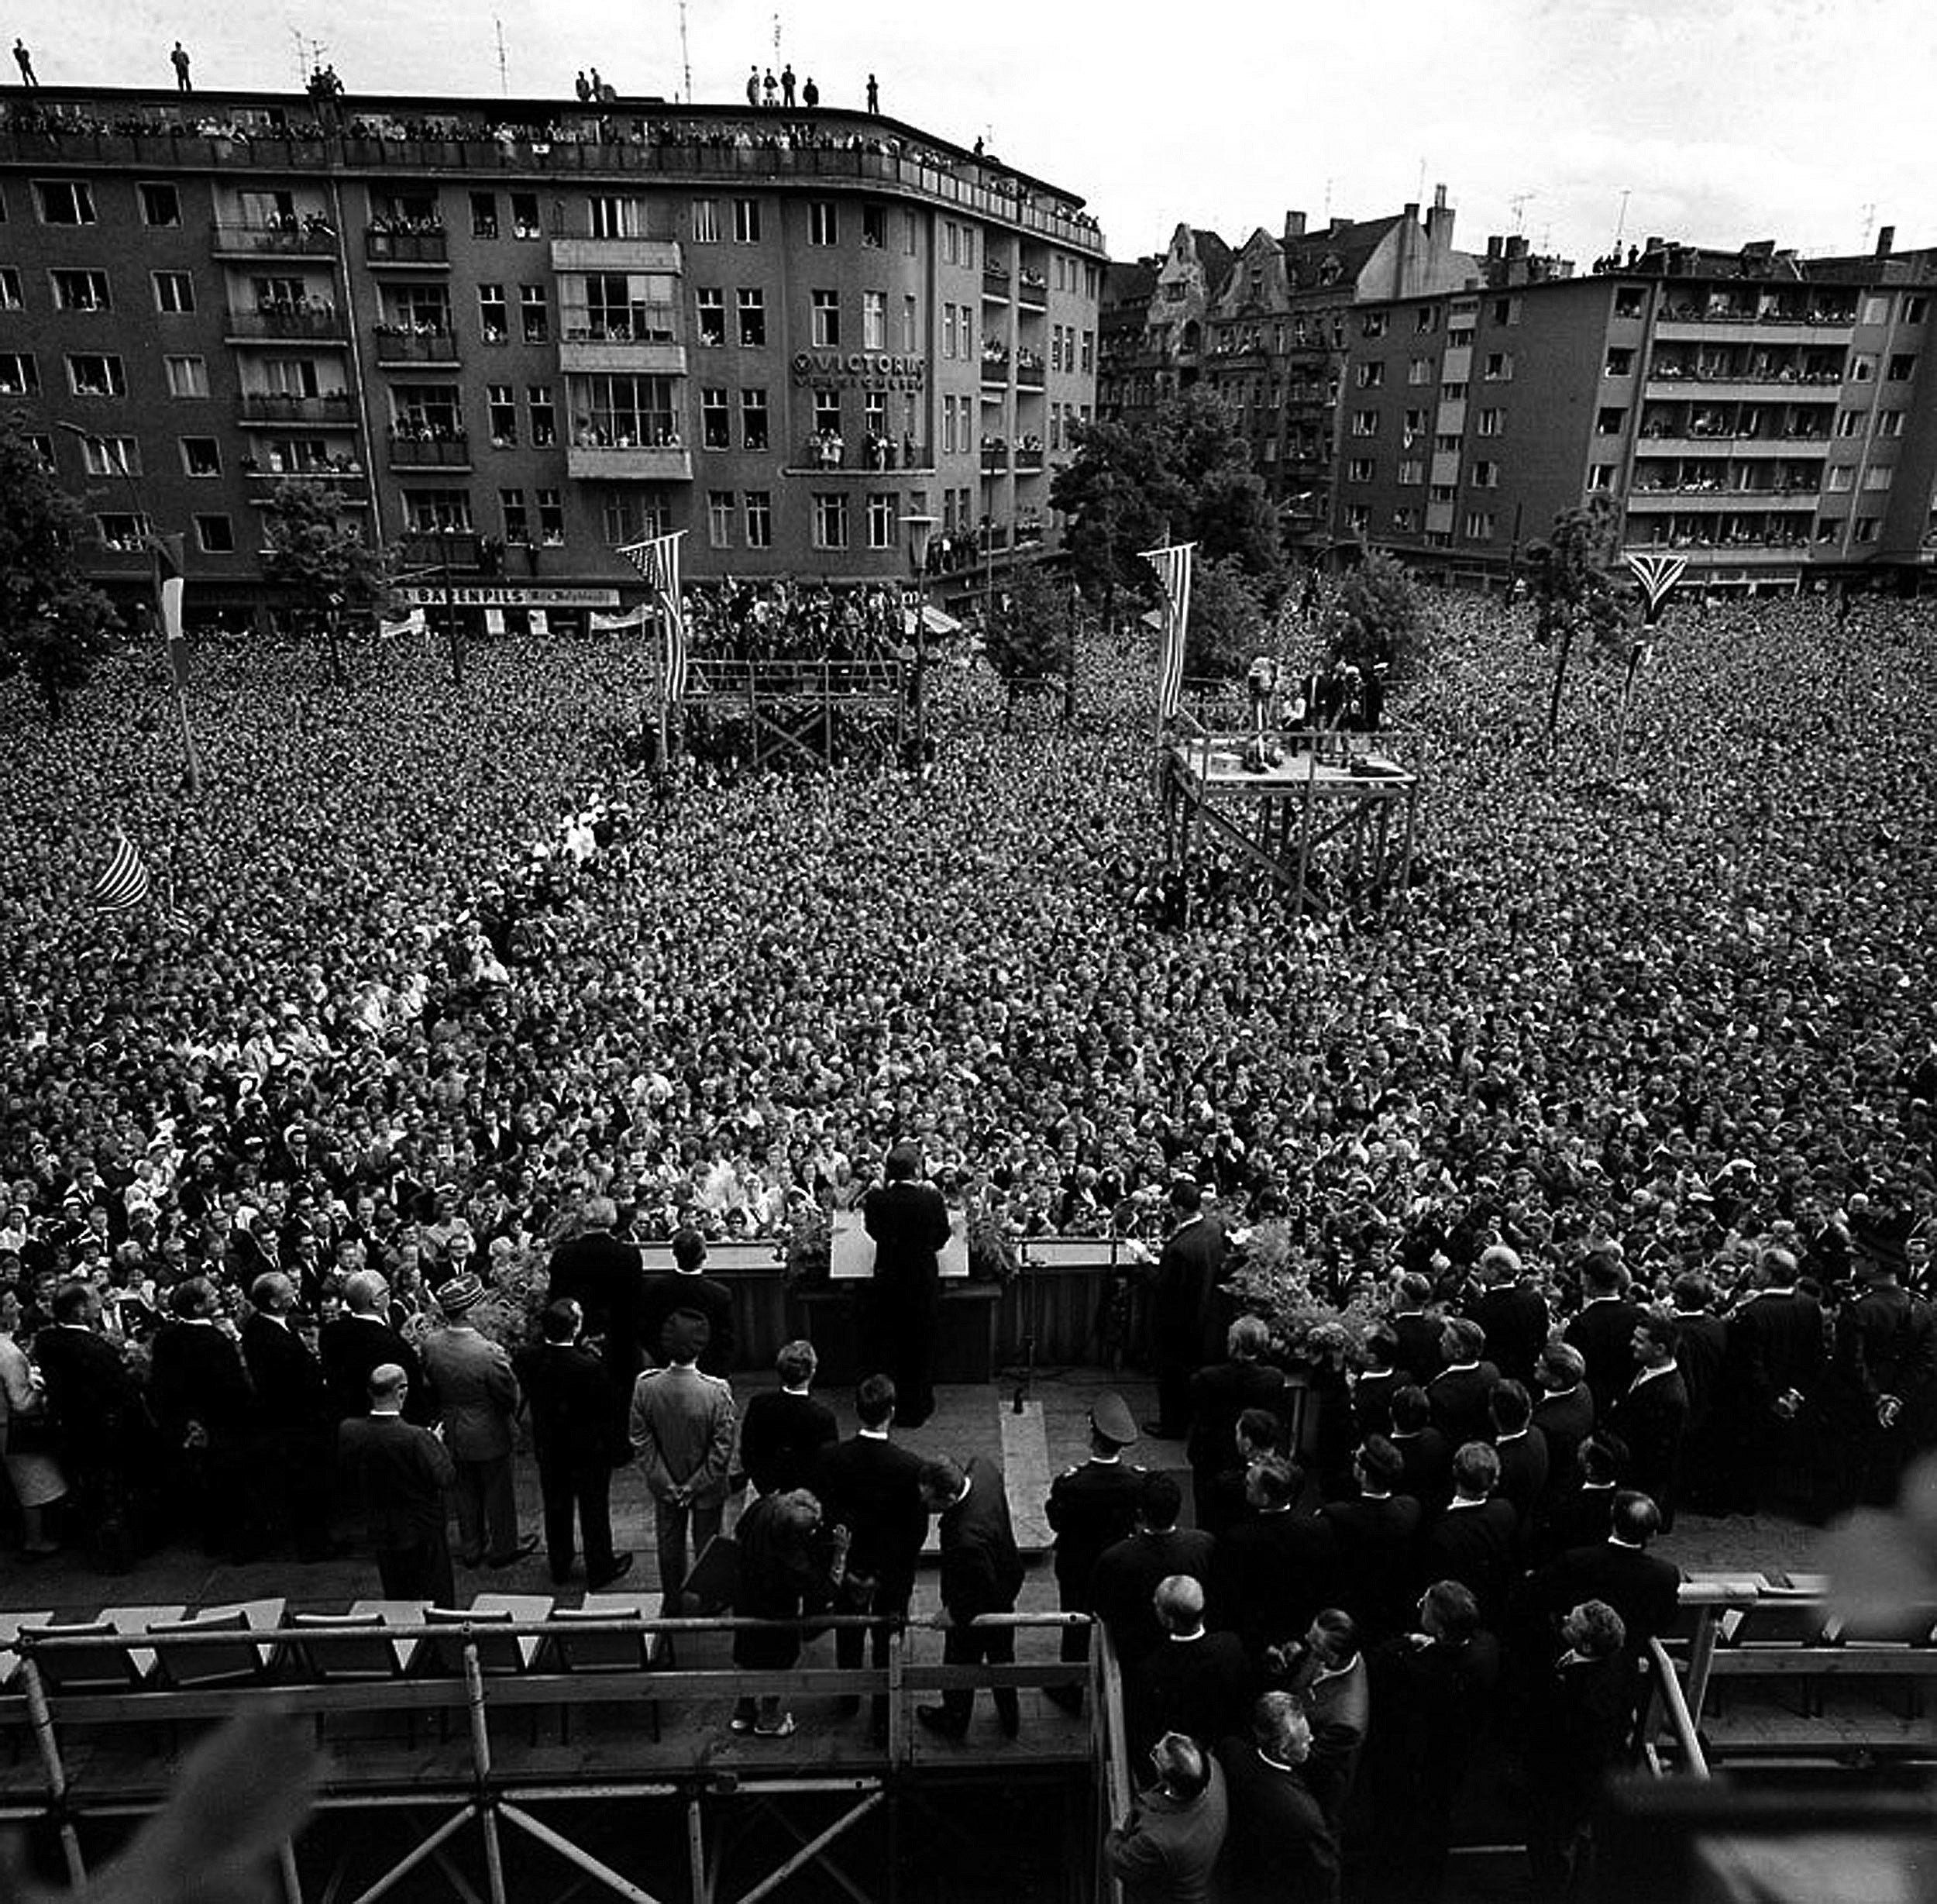 President Kennedy addresses the people of Berlin in 1963.